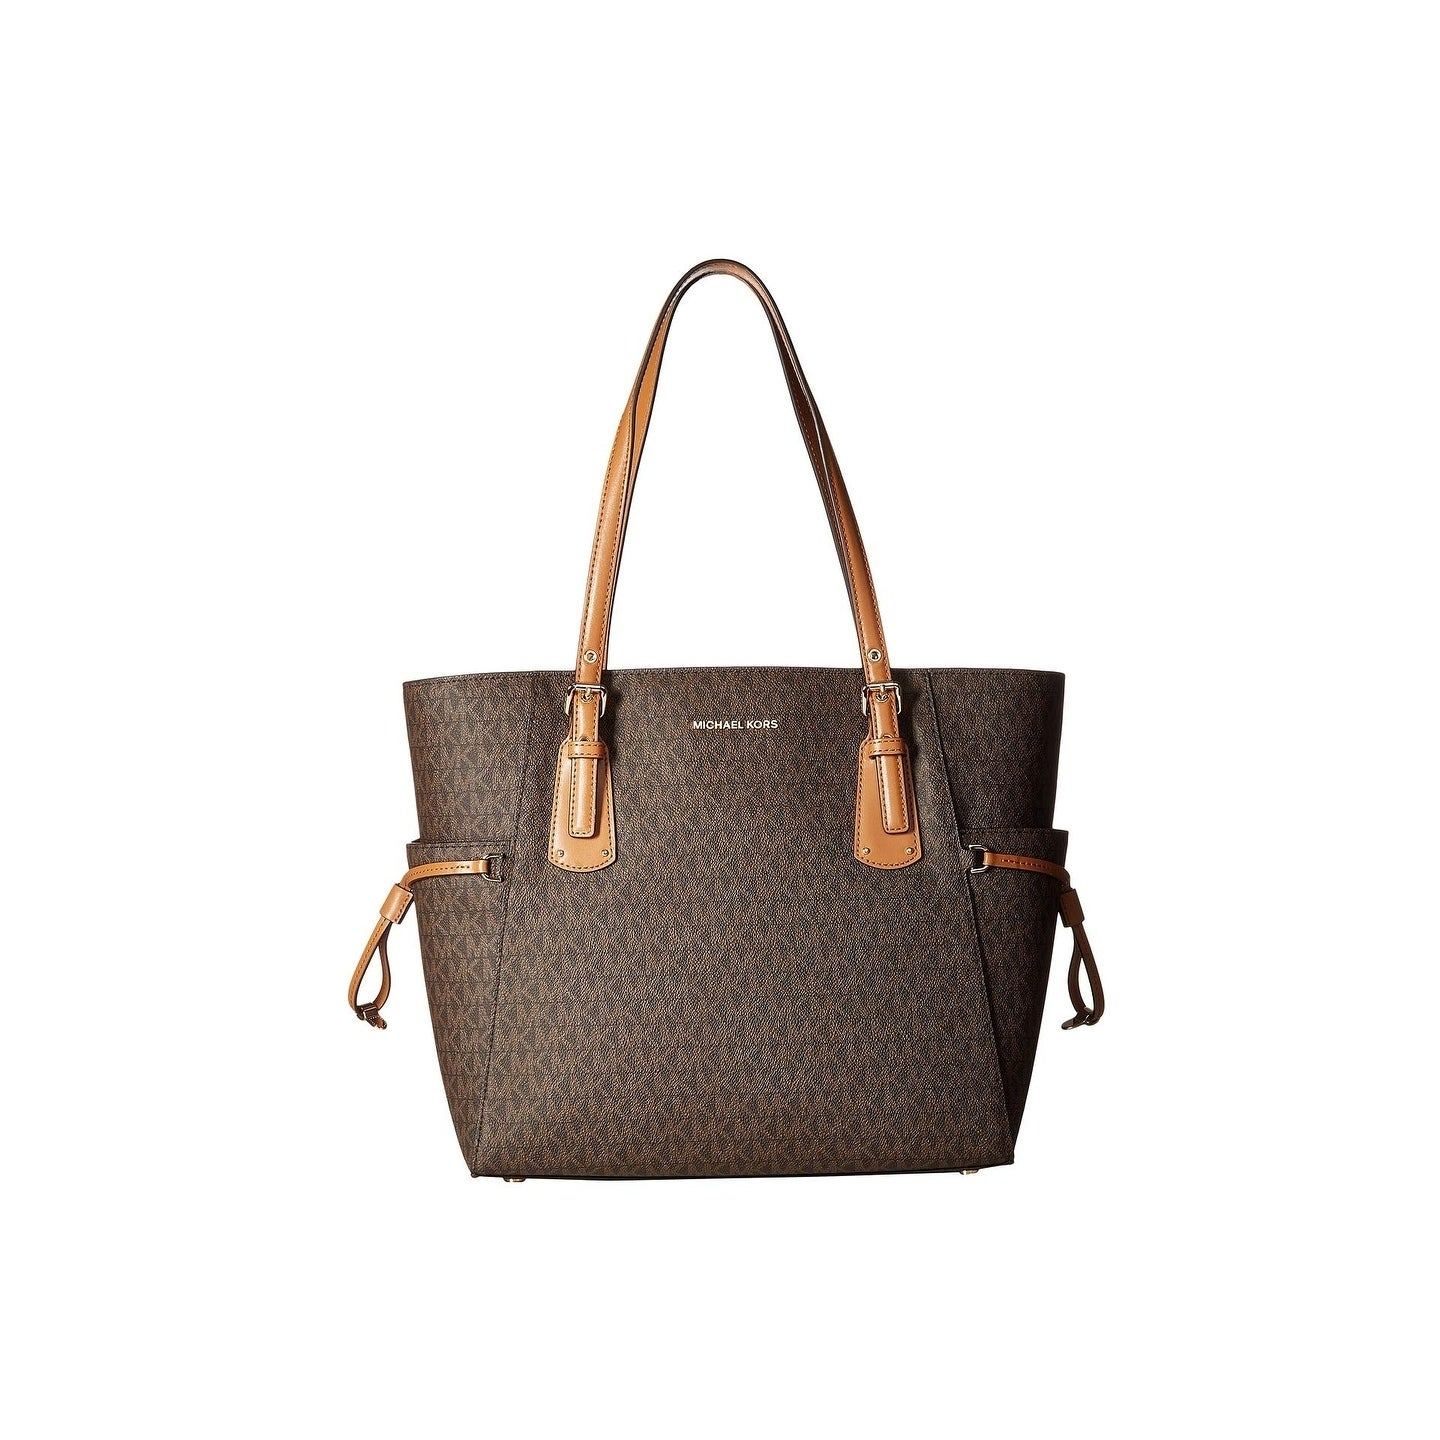 529b2dd81fc6 Buy Michael Kors Tote Bags Online at Overstock